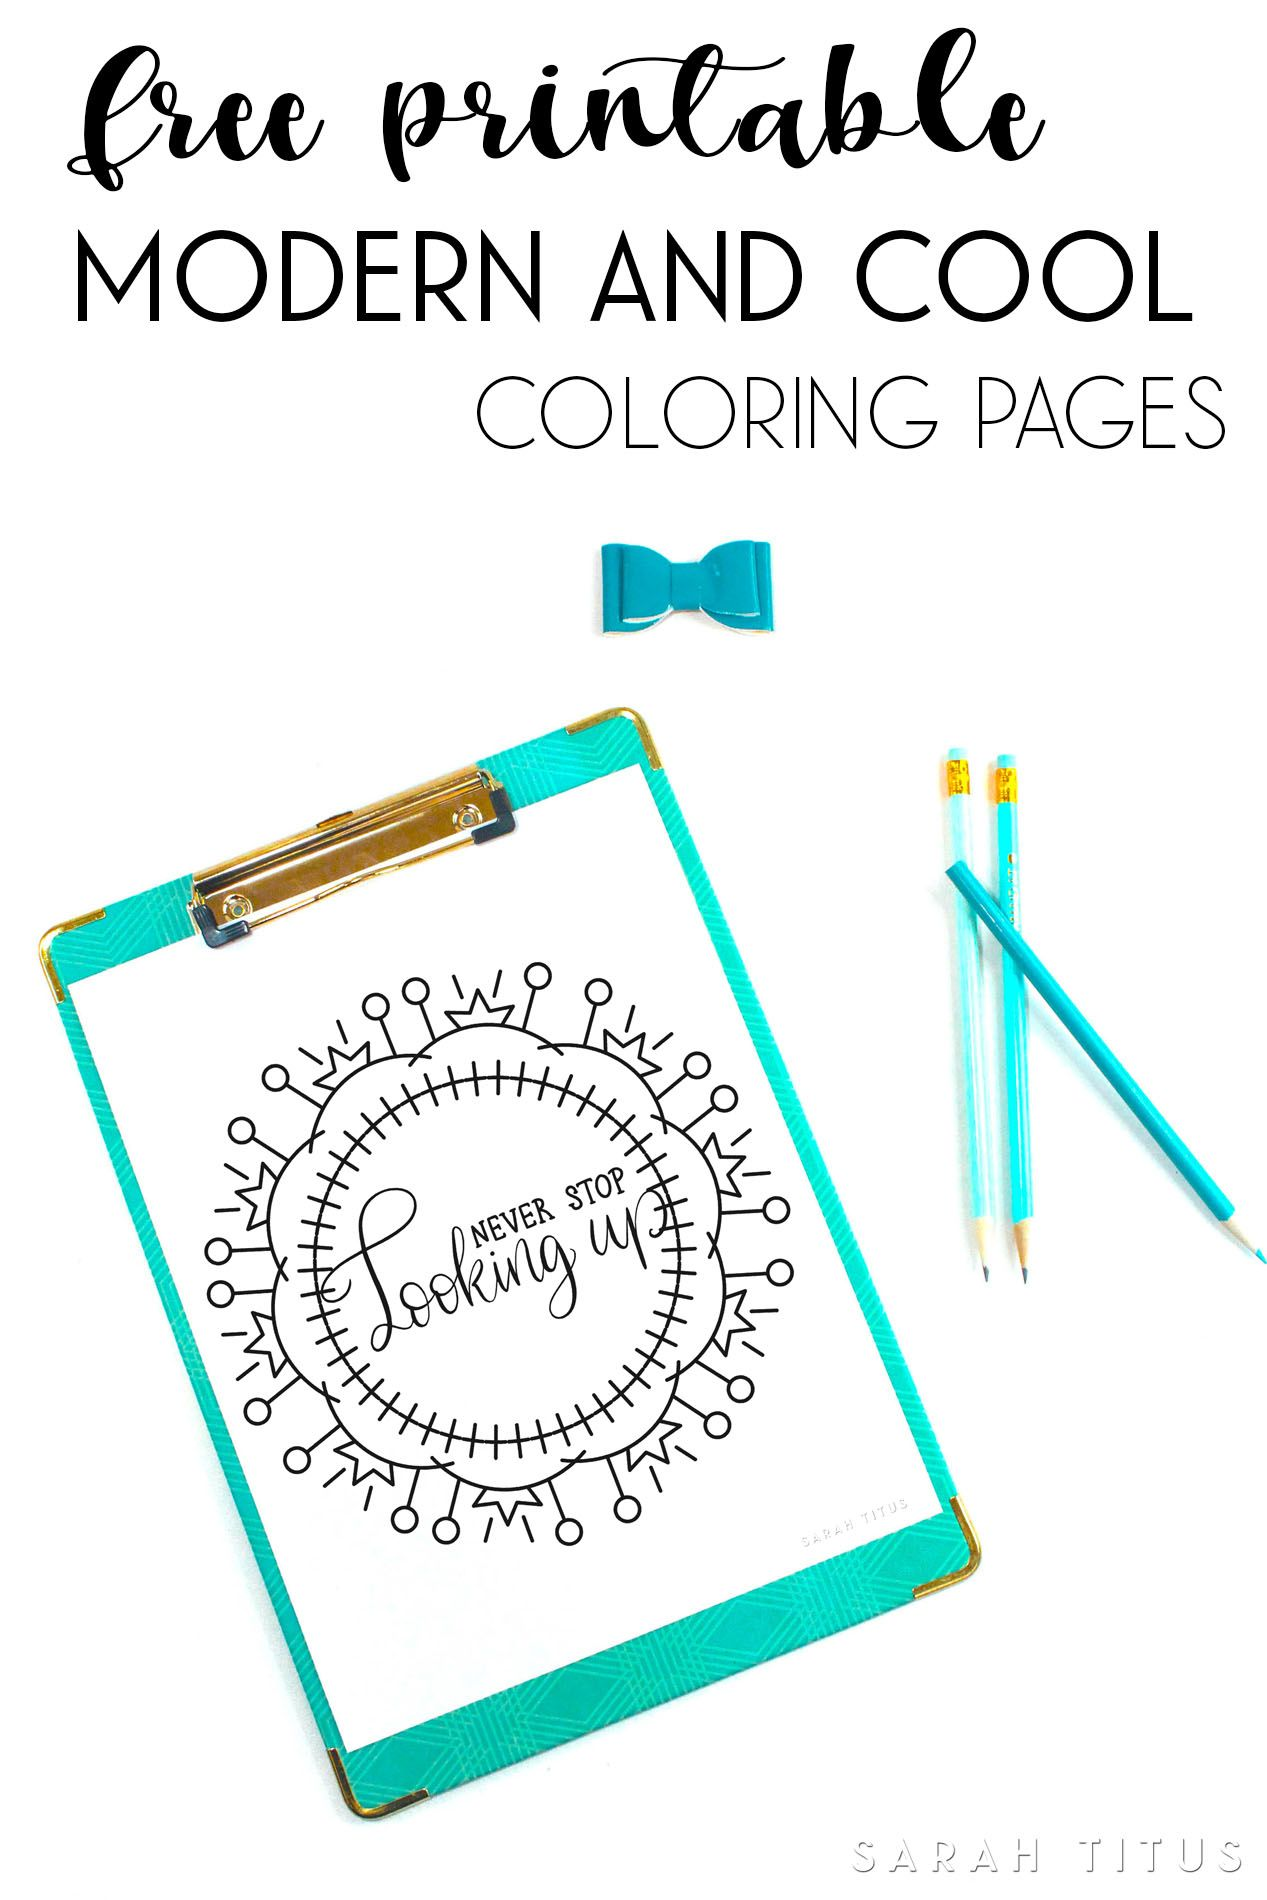 Free Printable Modern and Cool Coloring Pages | Frugal and Money ...